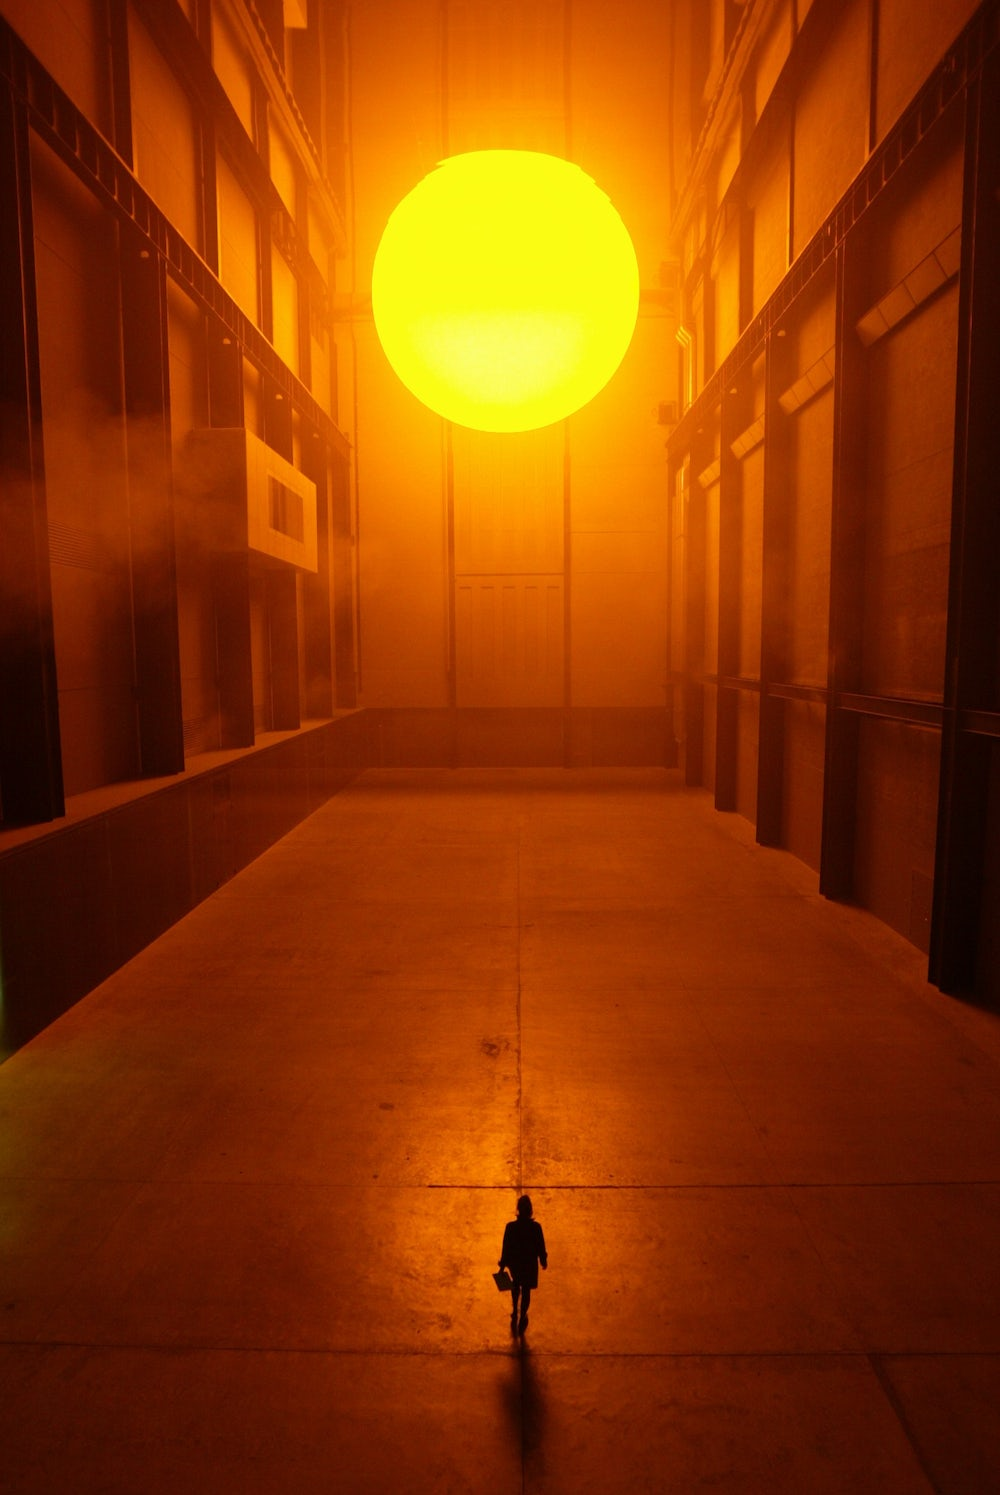 View of Olafur Eliasson's 'The Weather Project' installation at the Tate Modern gallery, London, England, 2003.